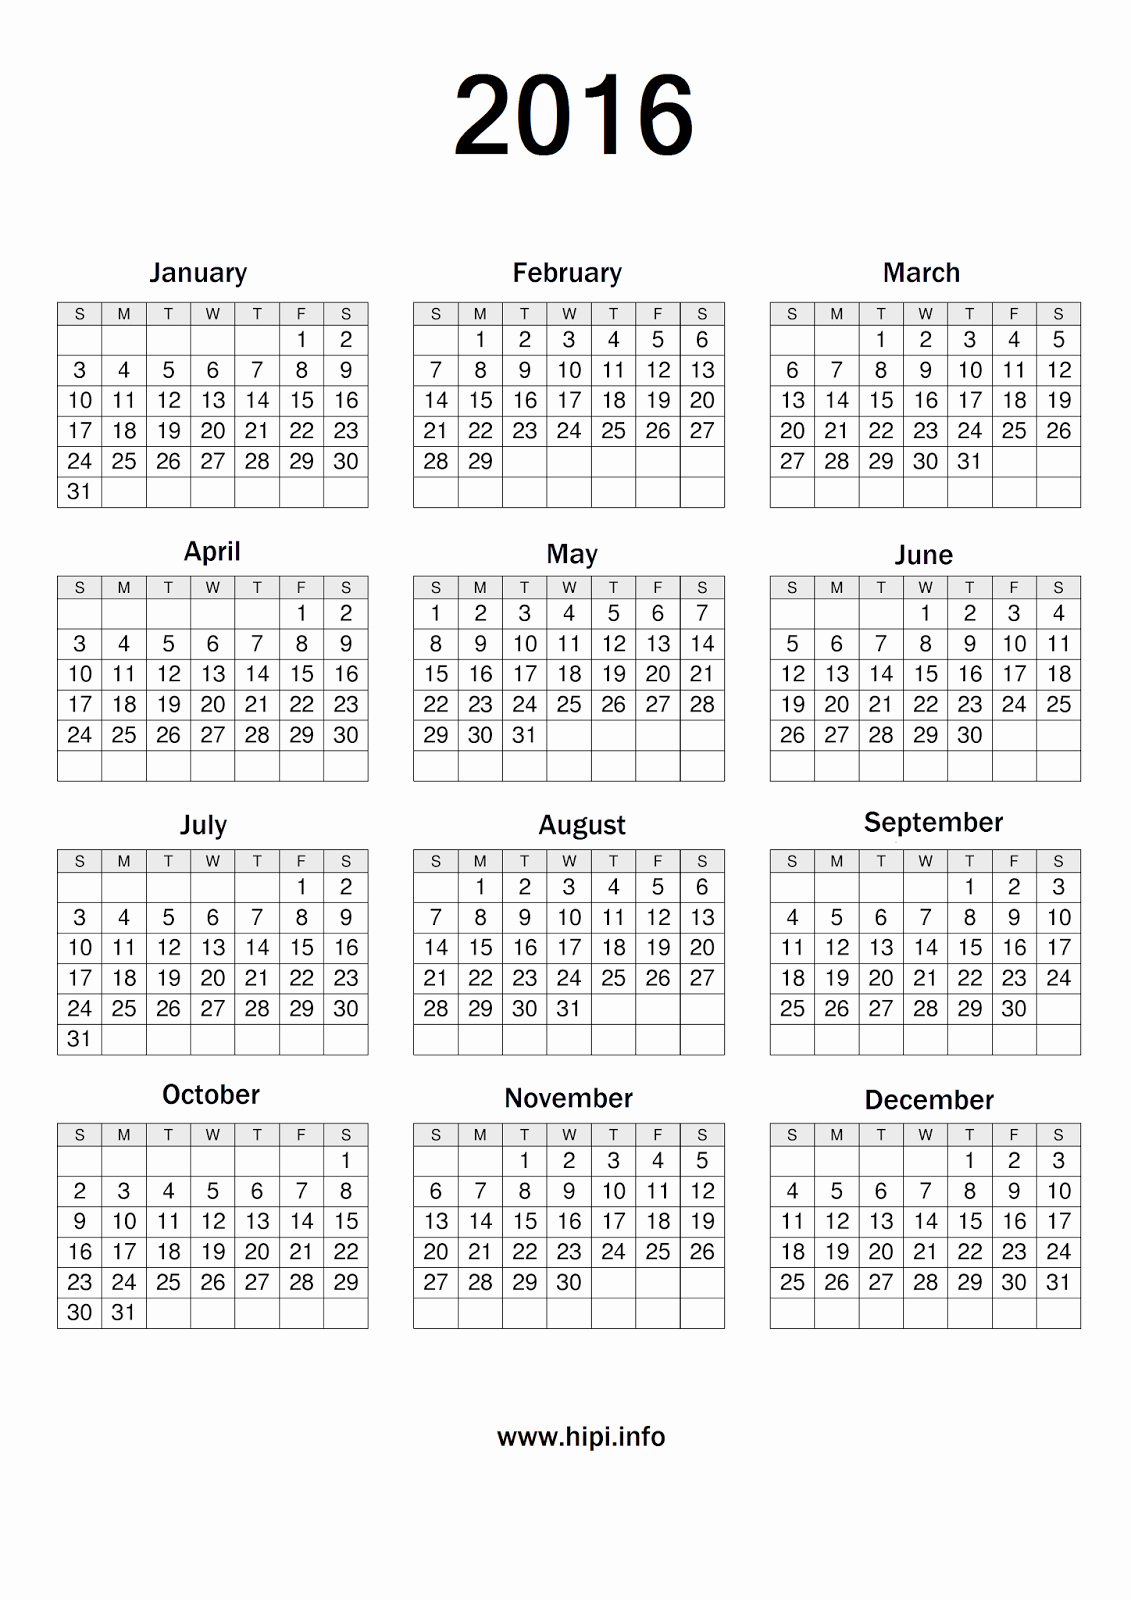 Monthly Calendar 2016 Printable Free Inspirational Twitter Headers Covers Wallpapers Calendars